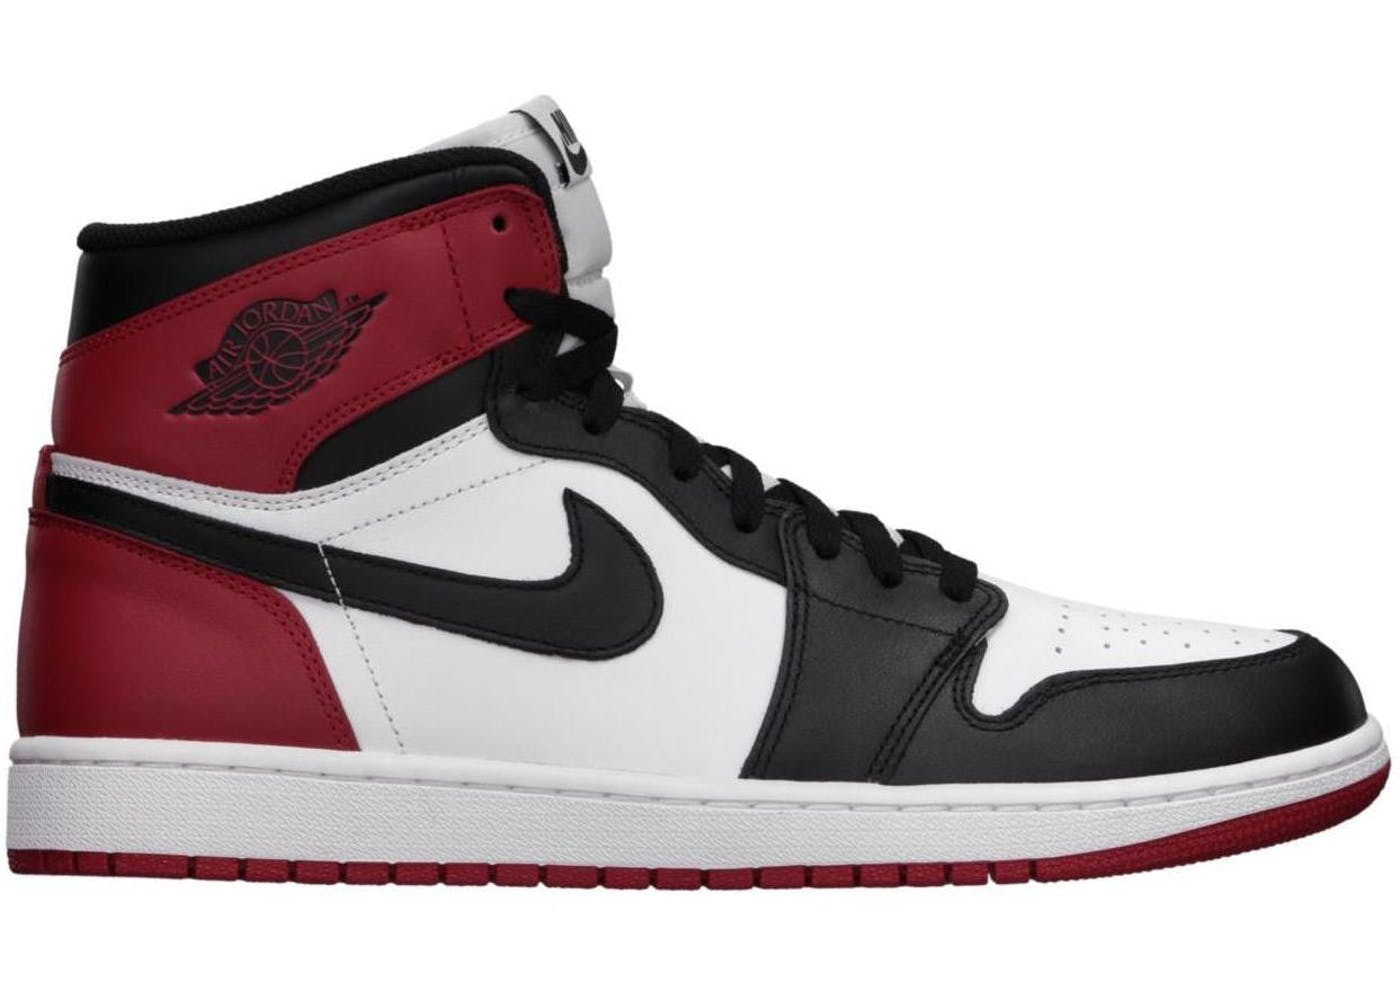 pretty nice 7c721 8bdc1 MJMondays: Jordan 1 Black Toes - StockX News